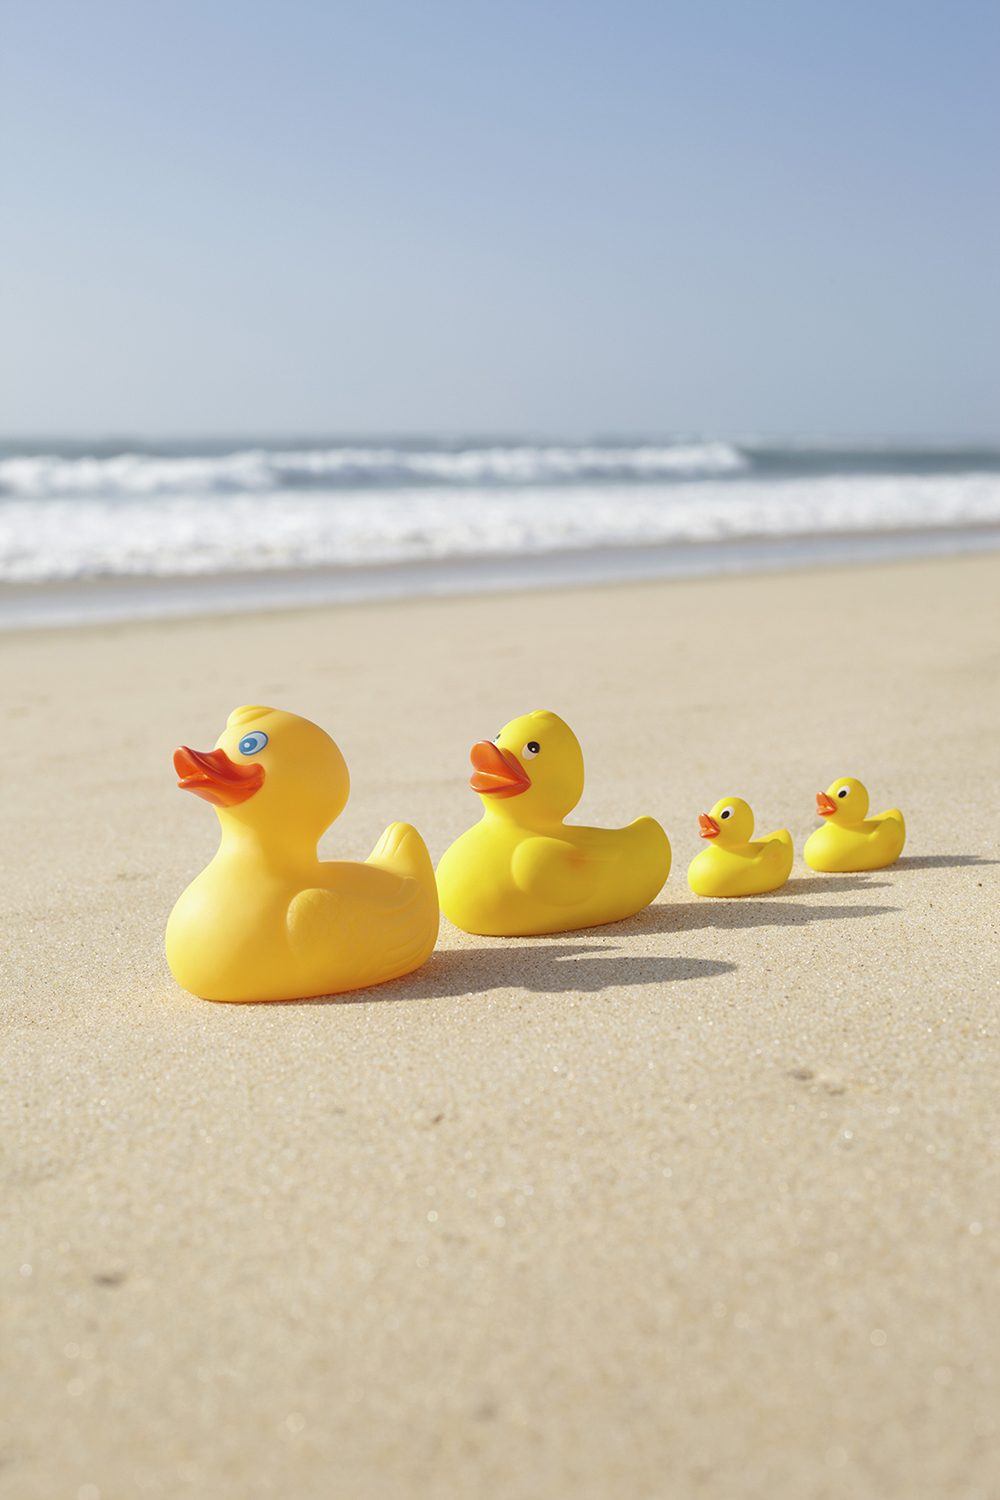 Family of rubber ducks on beach